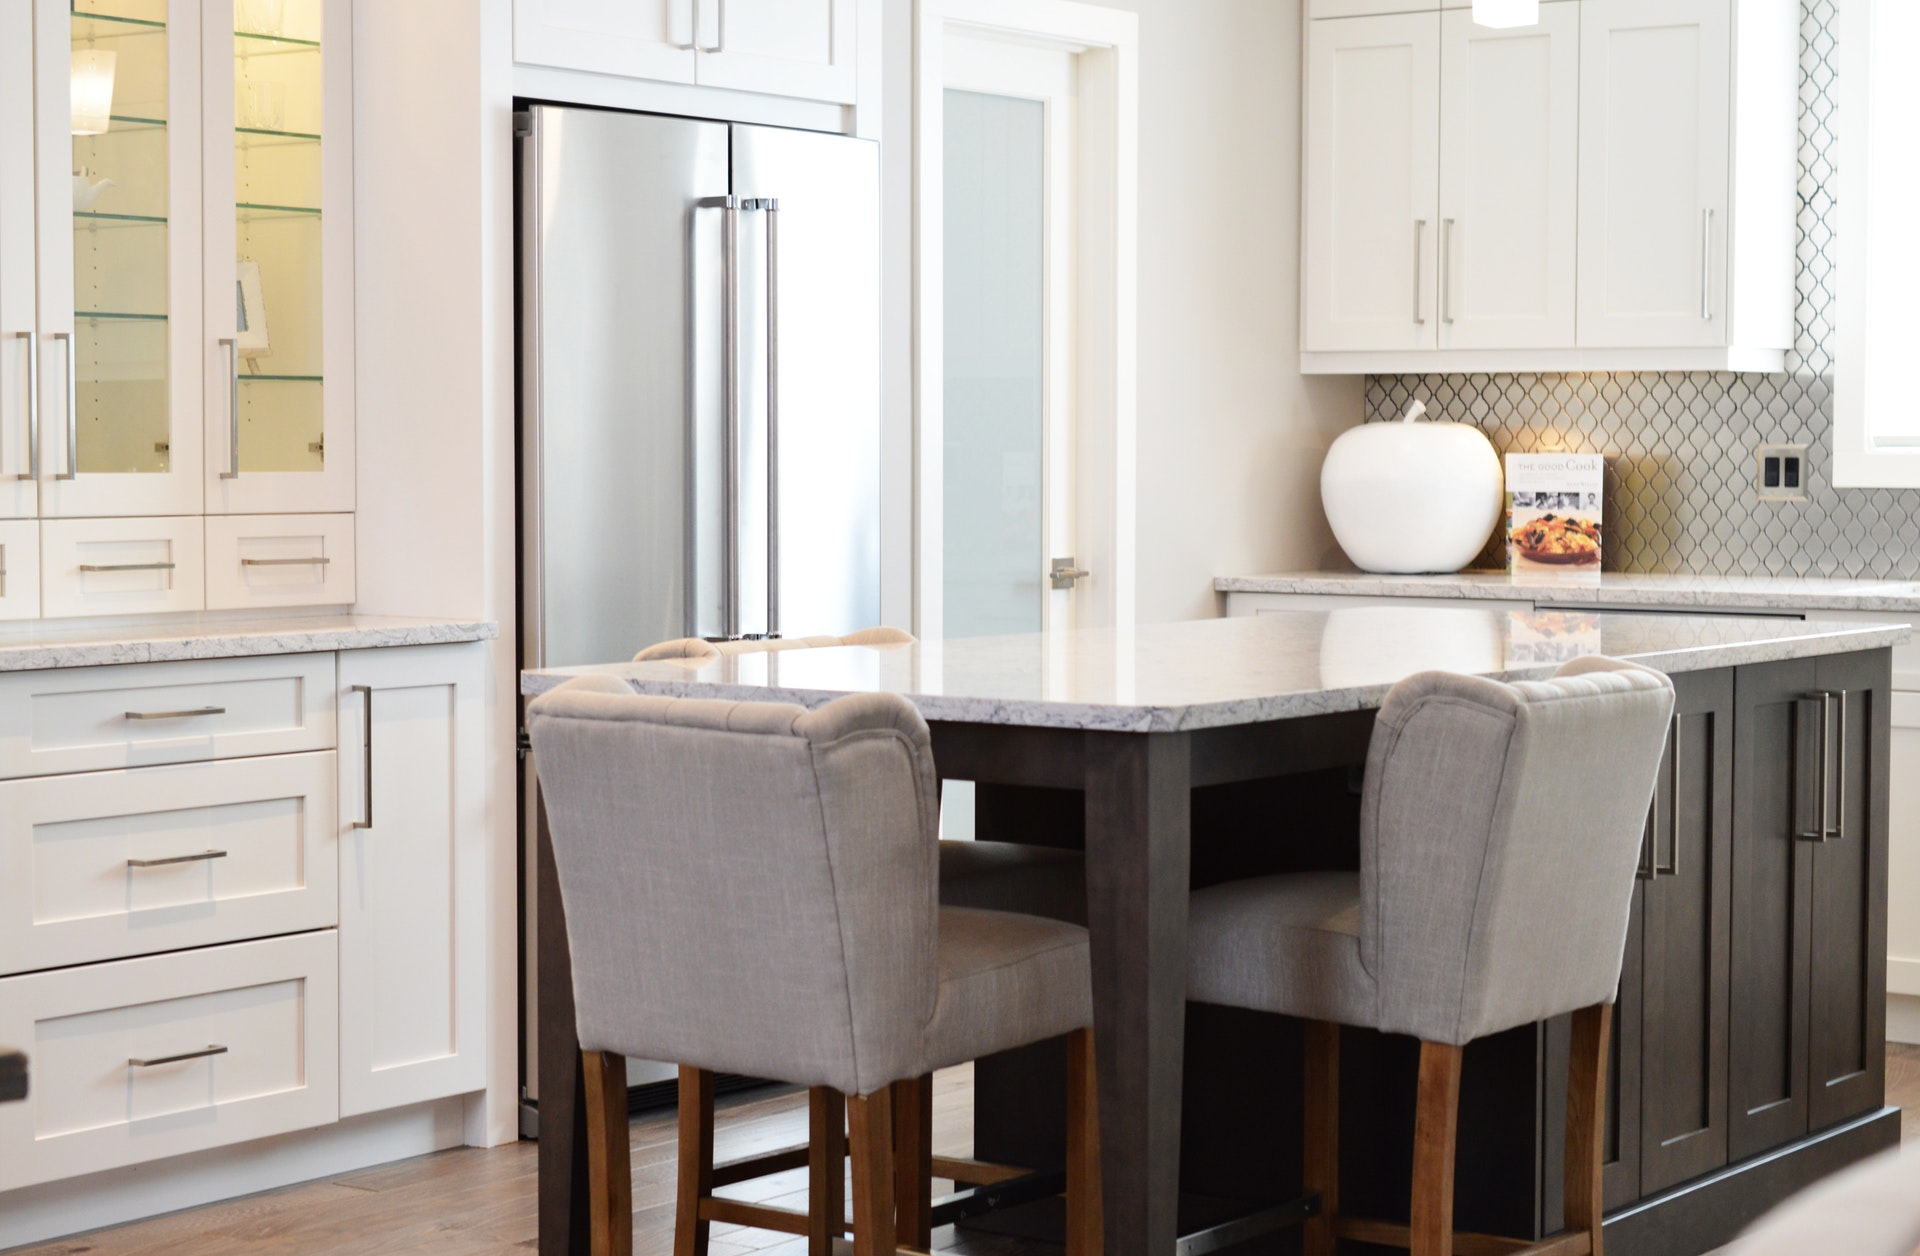 5 Signs It's Time to Redesign Your Kitchen